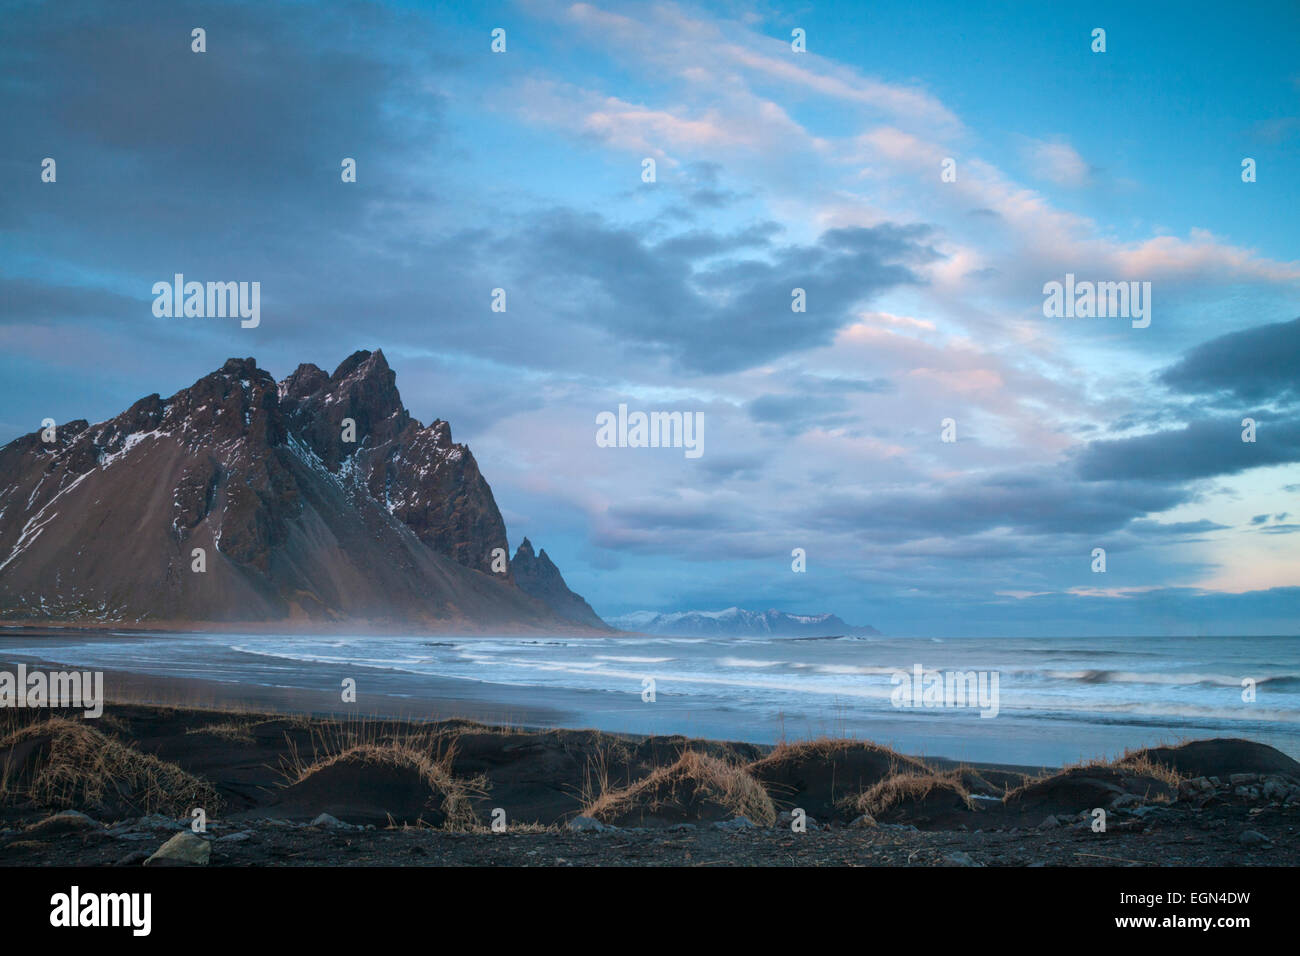 Dramatic scenery with black sand dunes, beach and mountains at Vestrahorn mountains, Hofn, Stokksnes, South Iceland Stock Photo